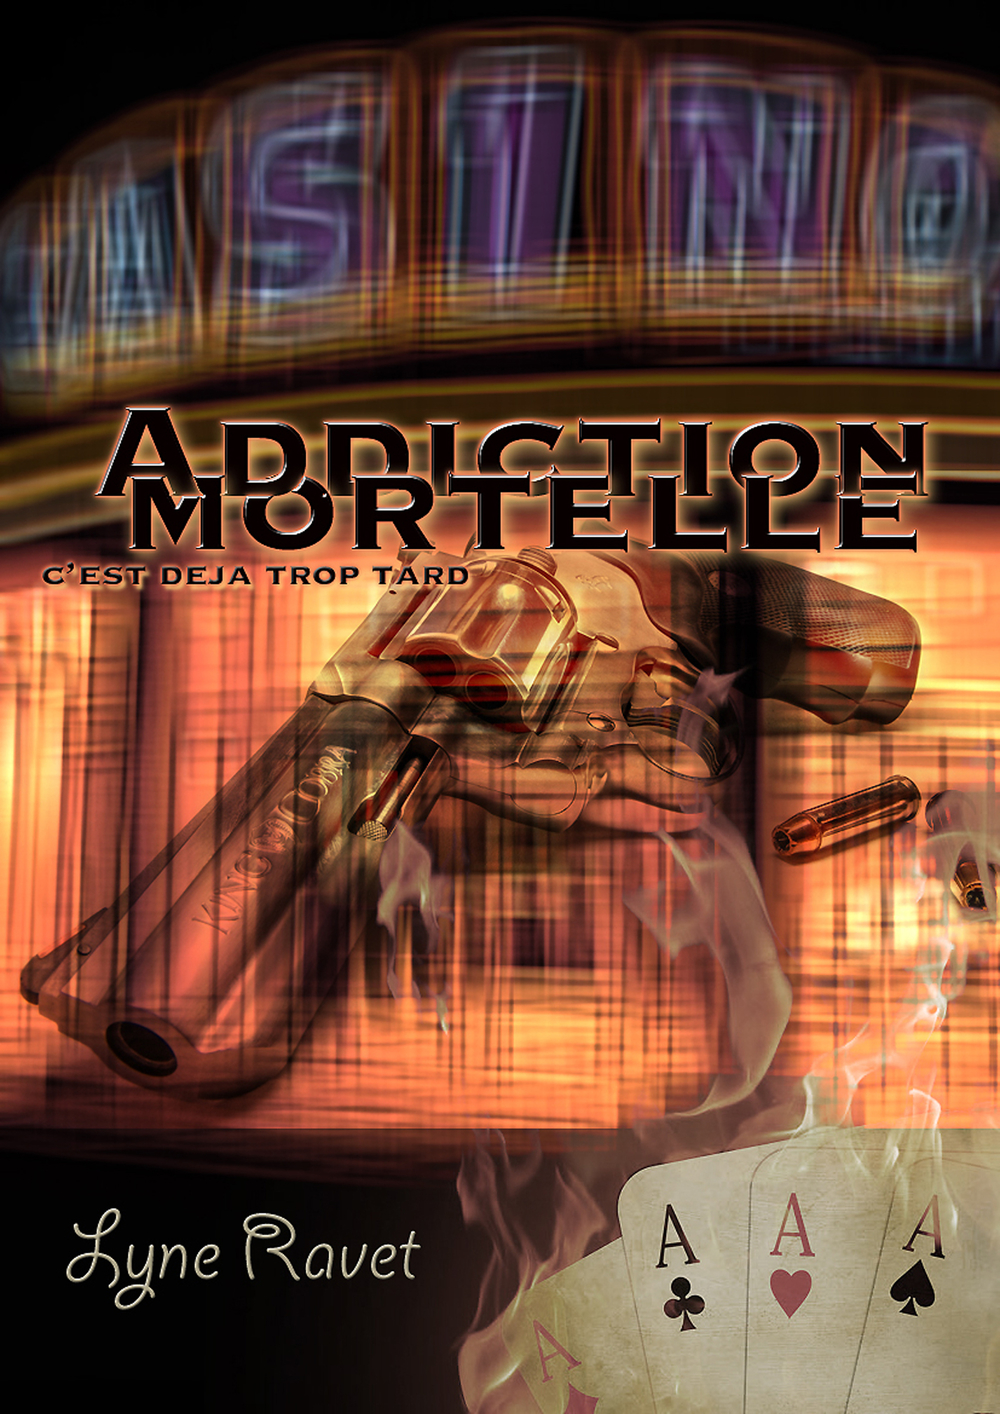 Addiction mortelle